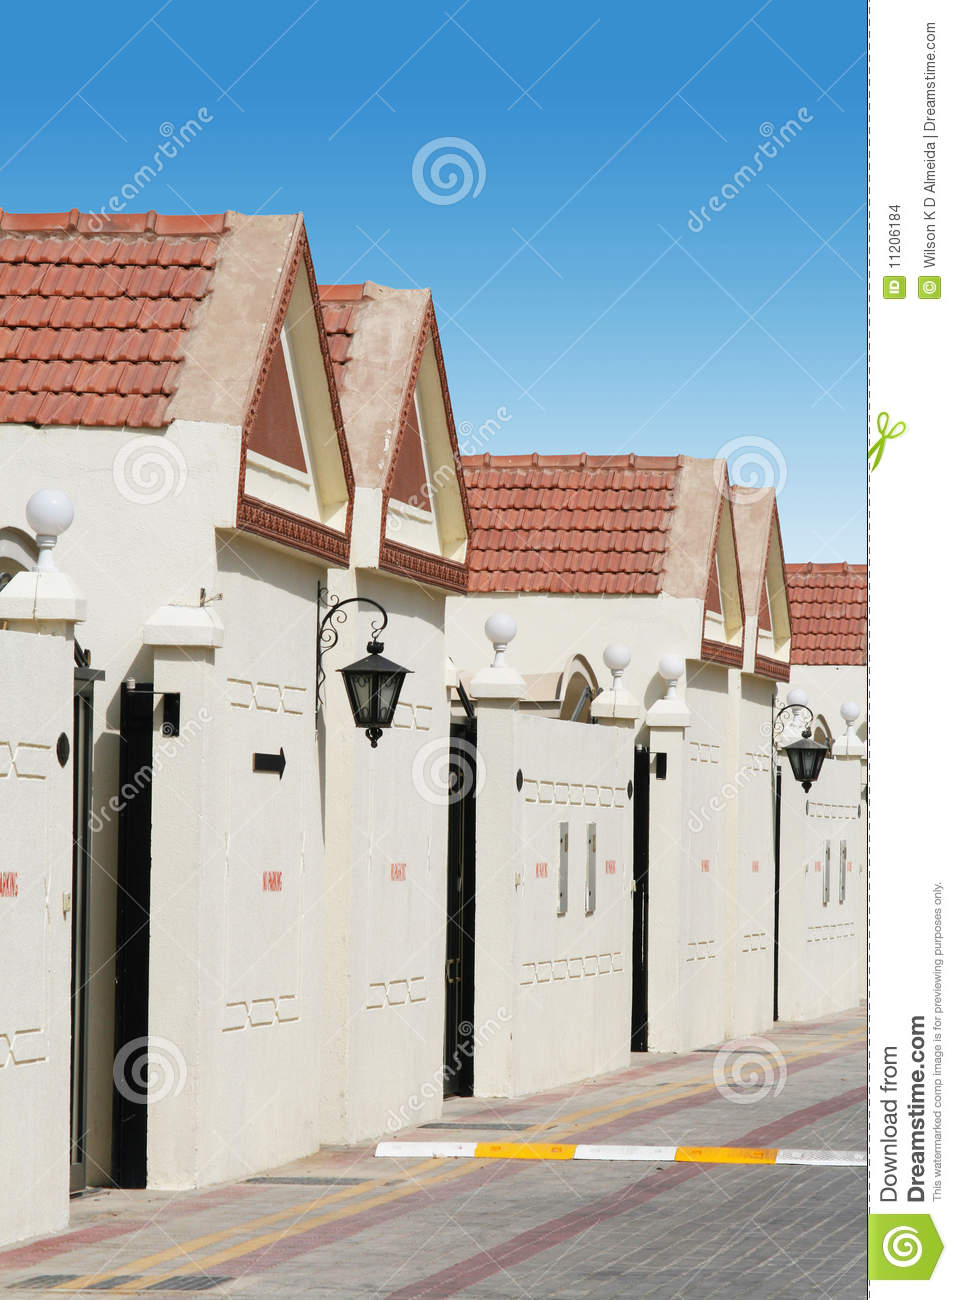 A Row of Town Houses